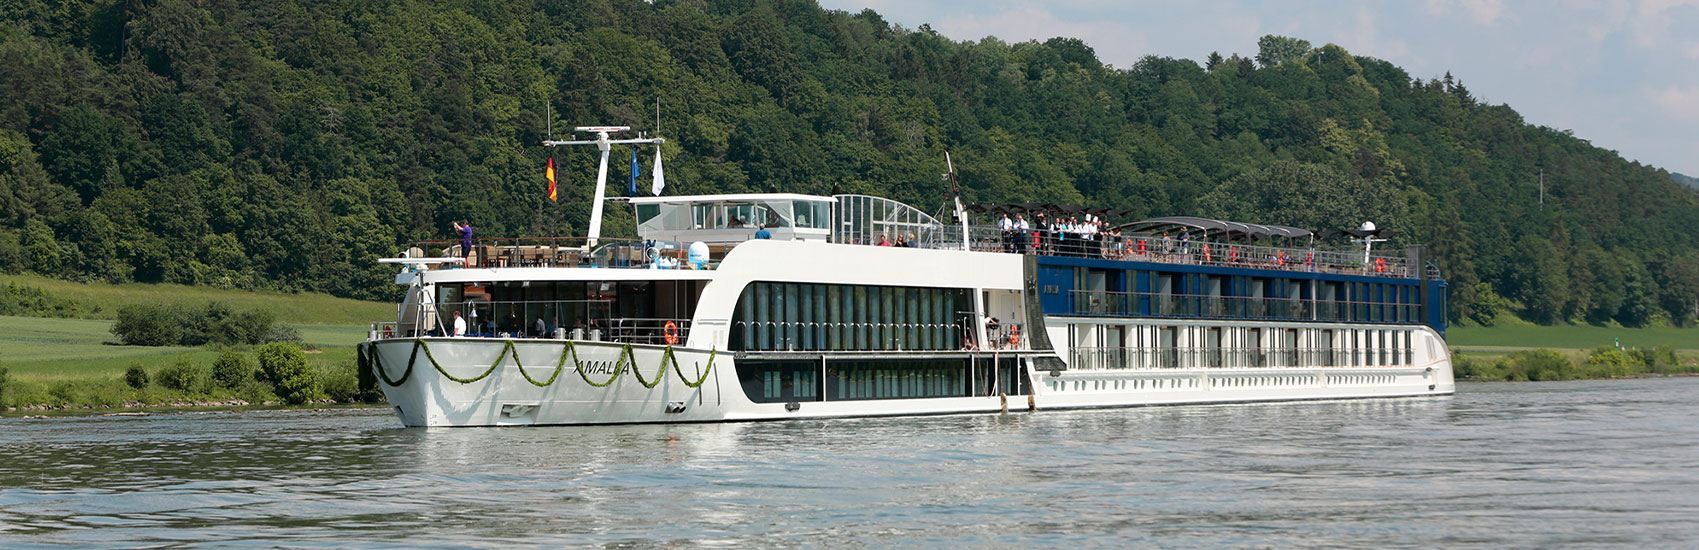 Triple The Savings with AmaWaterways 2